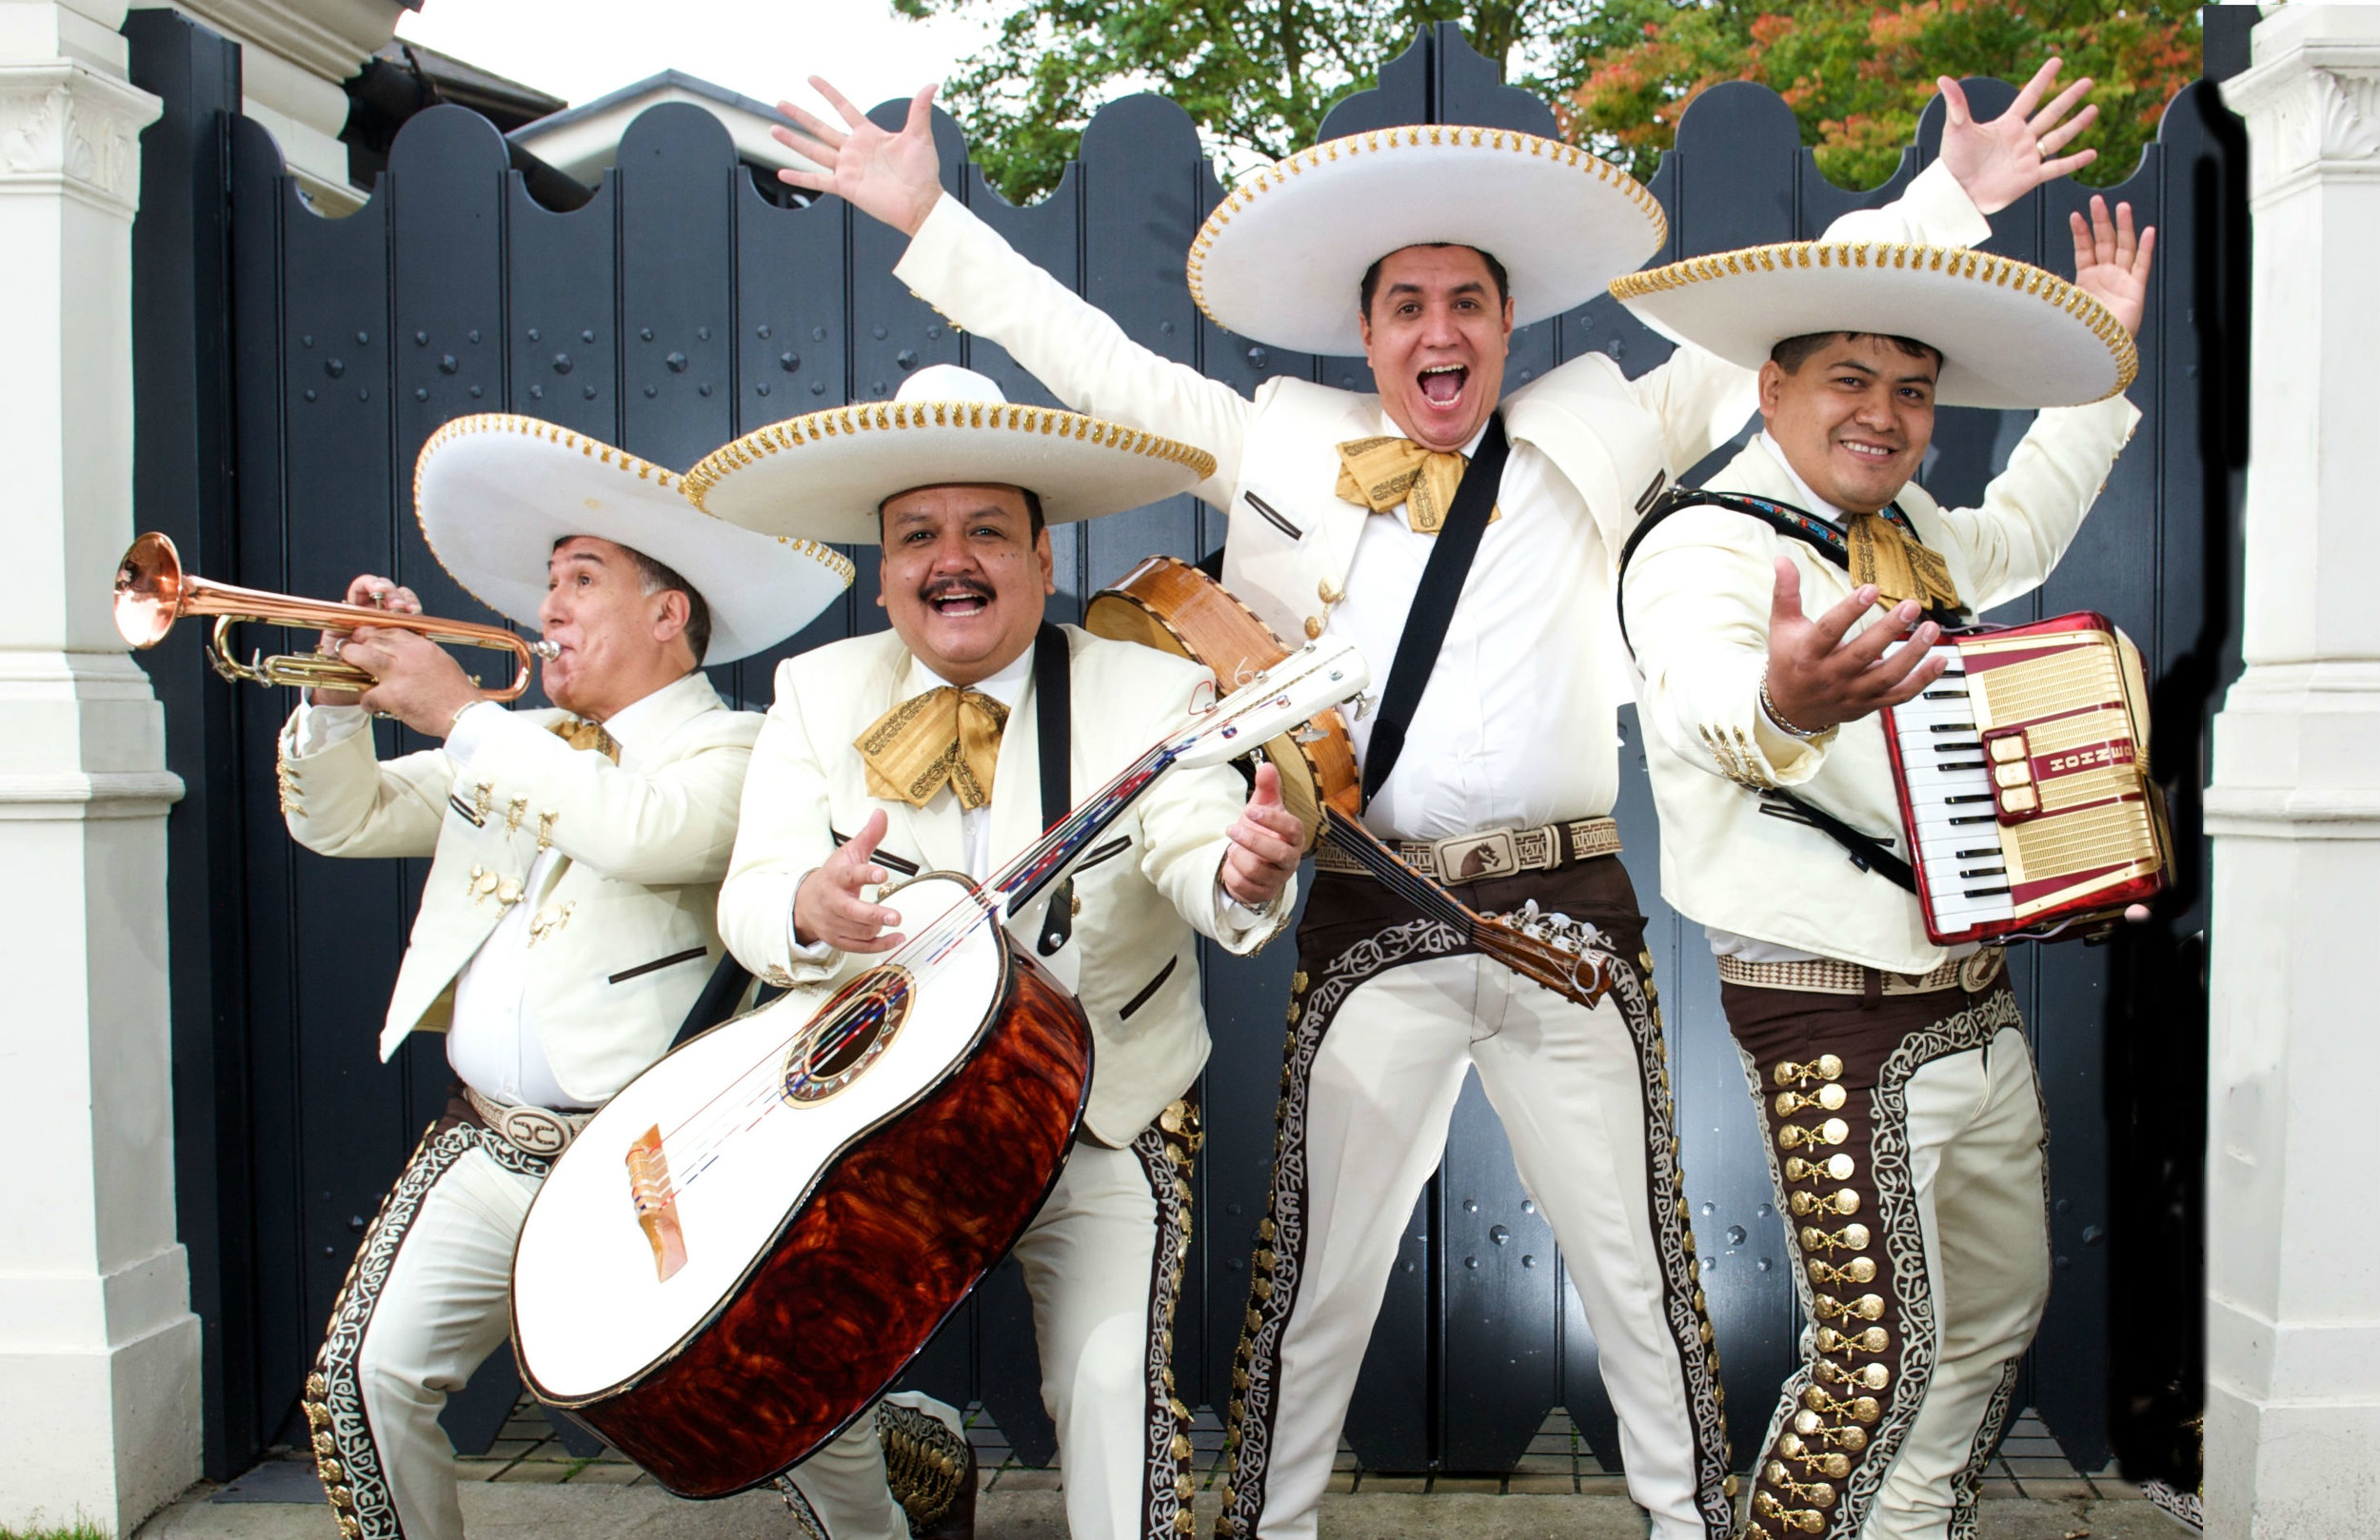 The Mariachis perform serenades, traditional pieces and modern pop music in a Mariachi style!